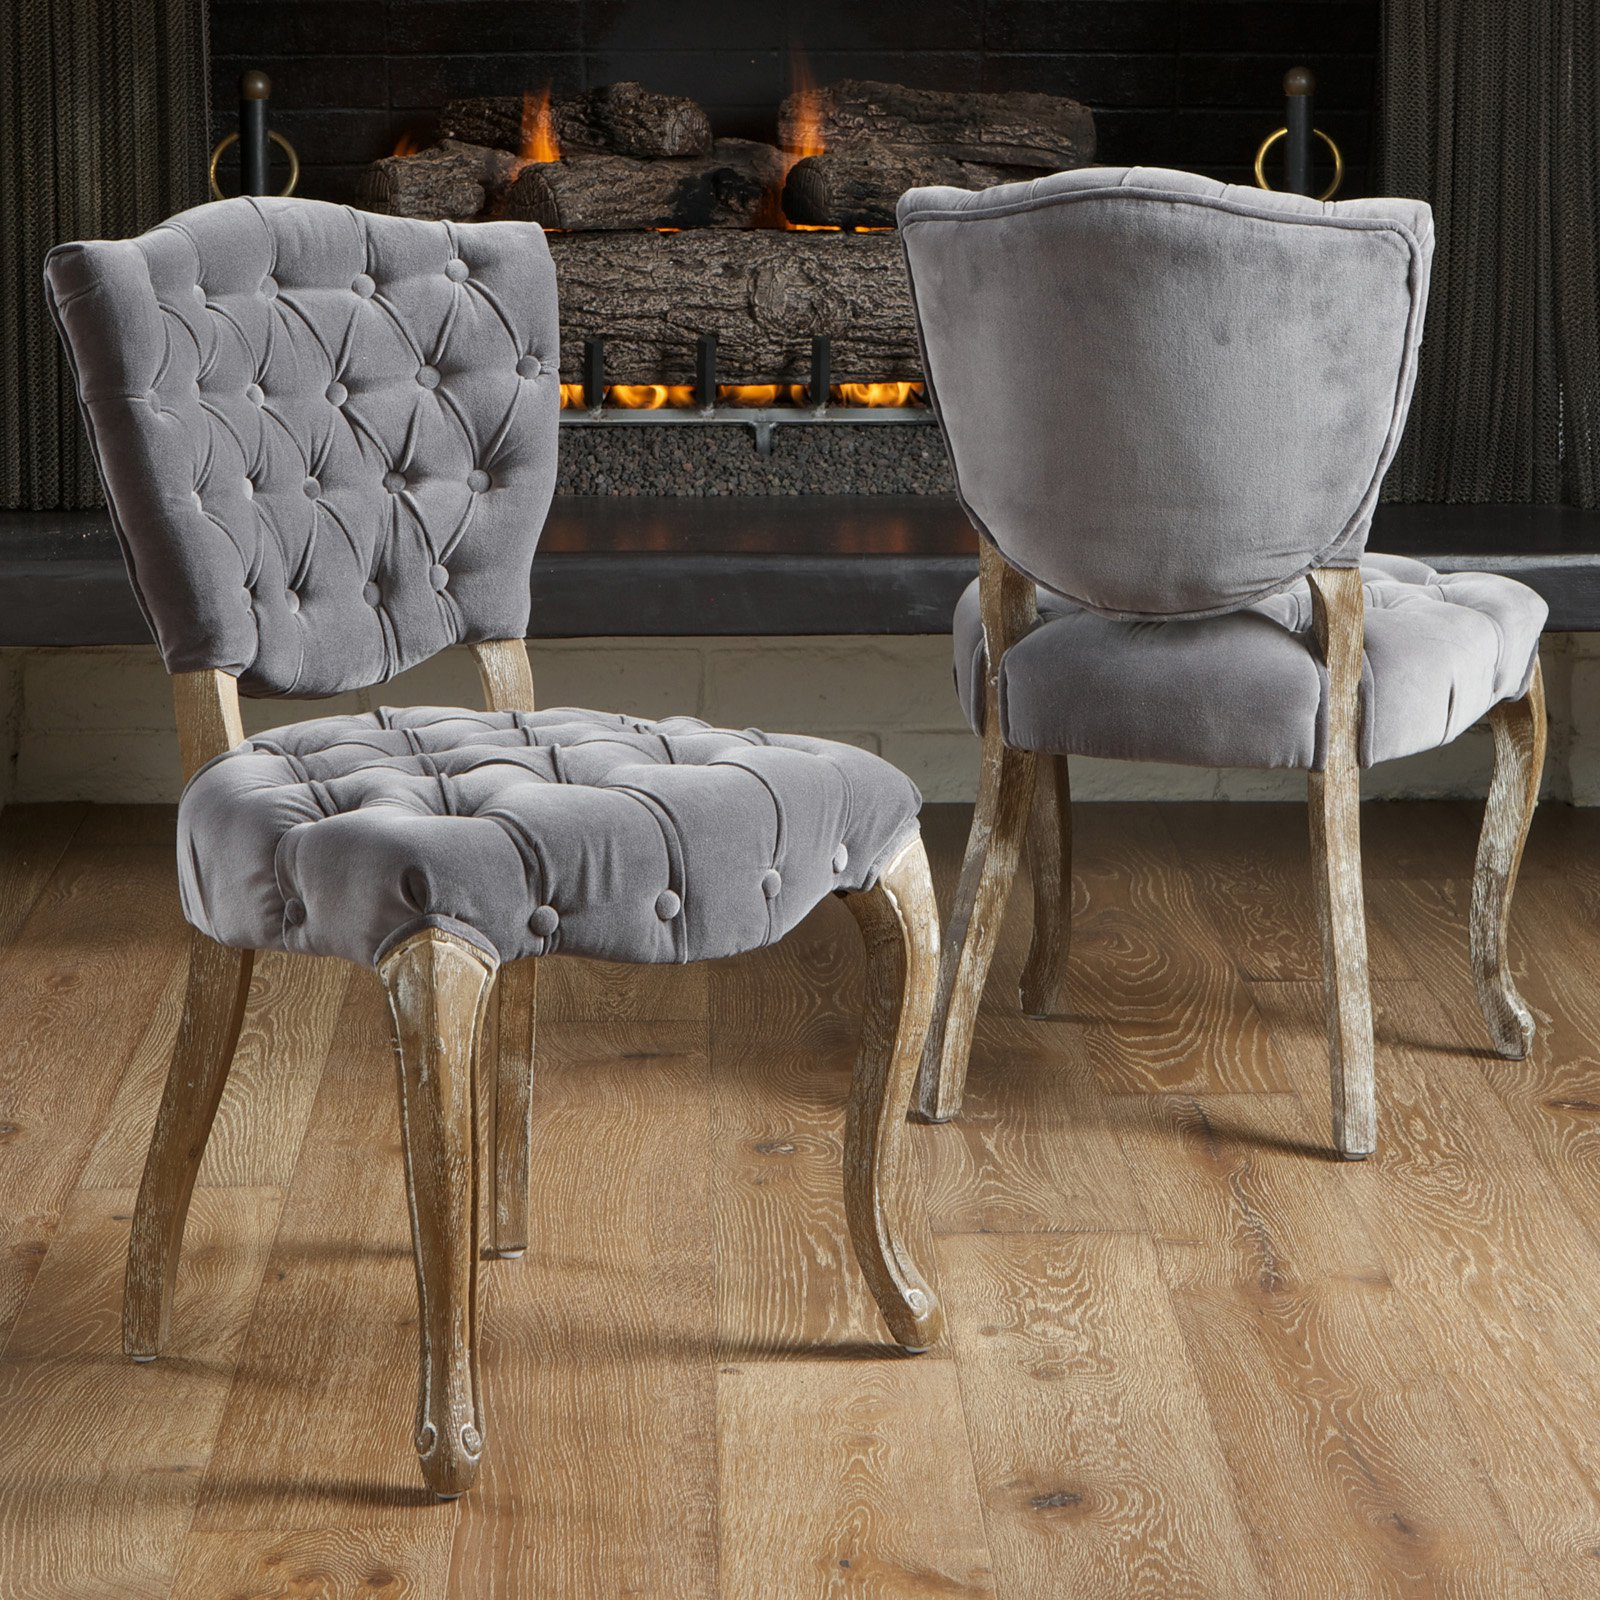 & Middleton Tufted Grey Fabric Dining Chairs - 2 Pack - Walmart.com